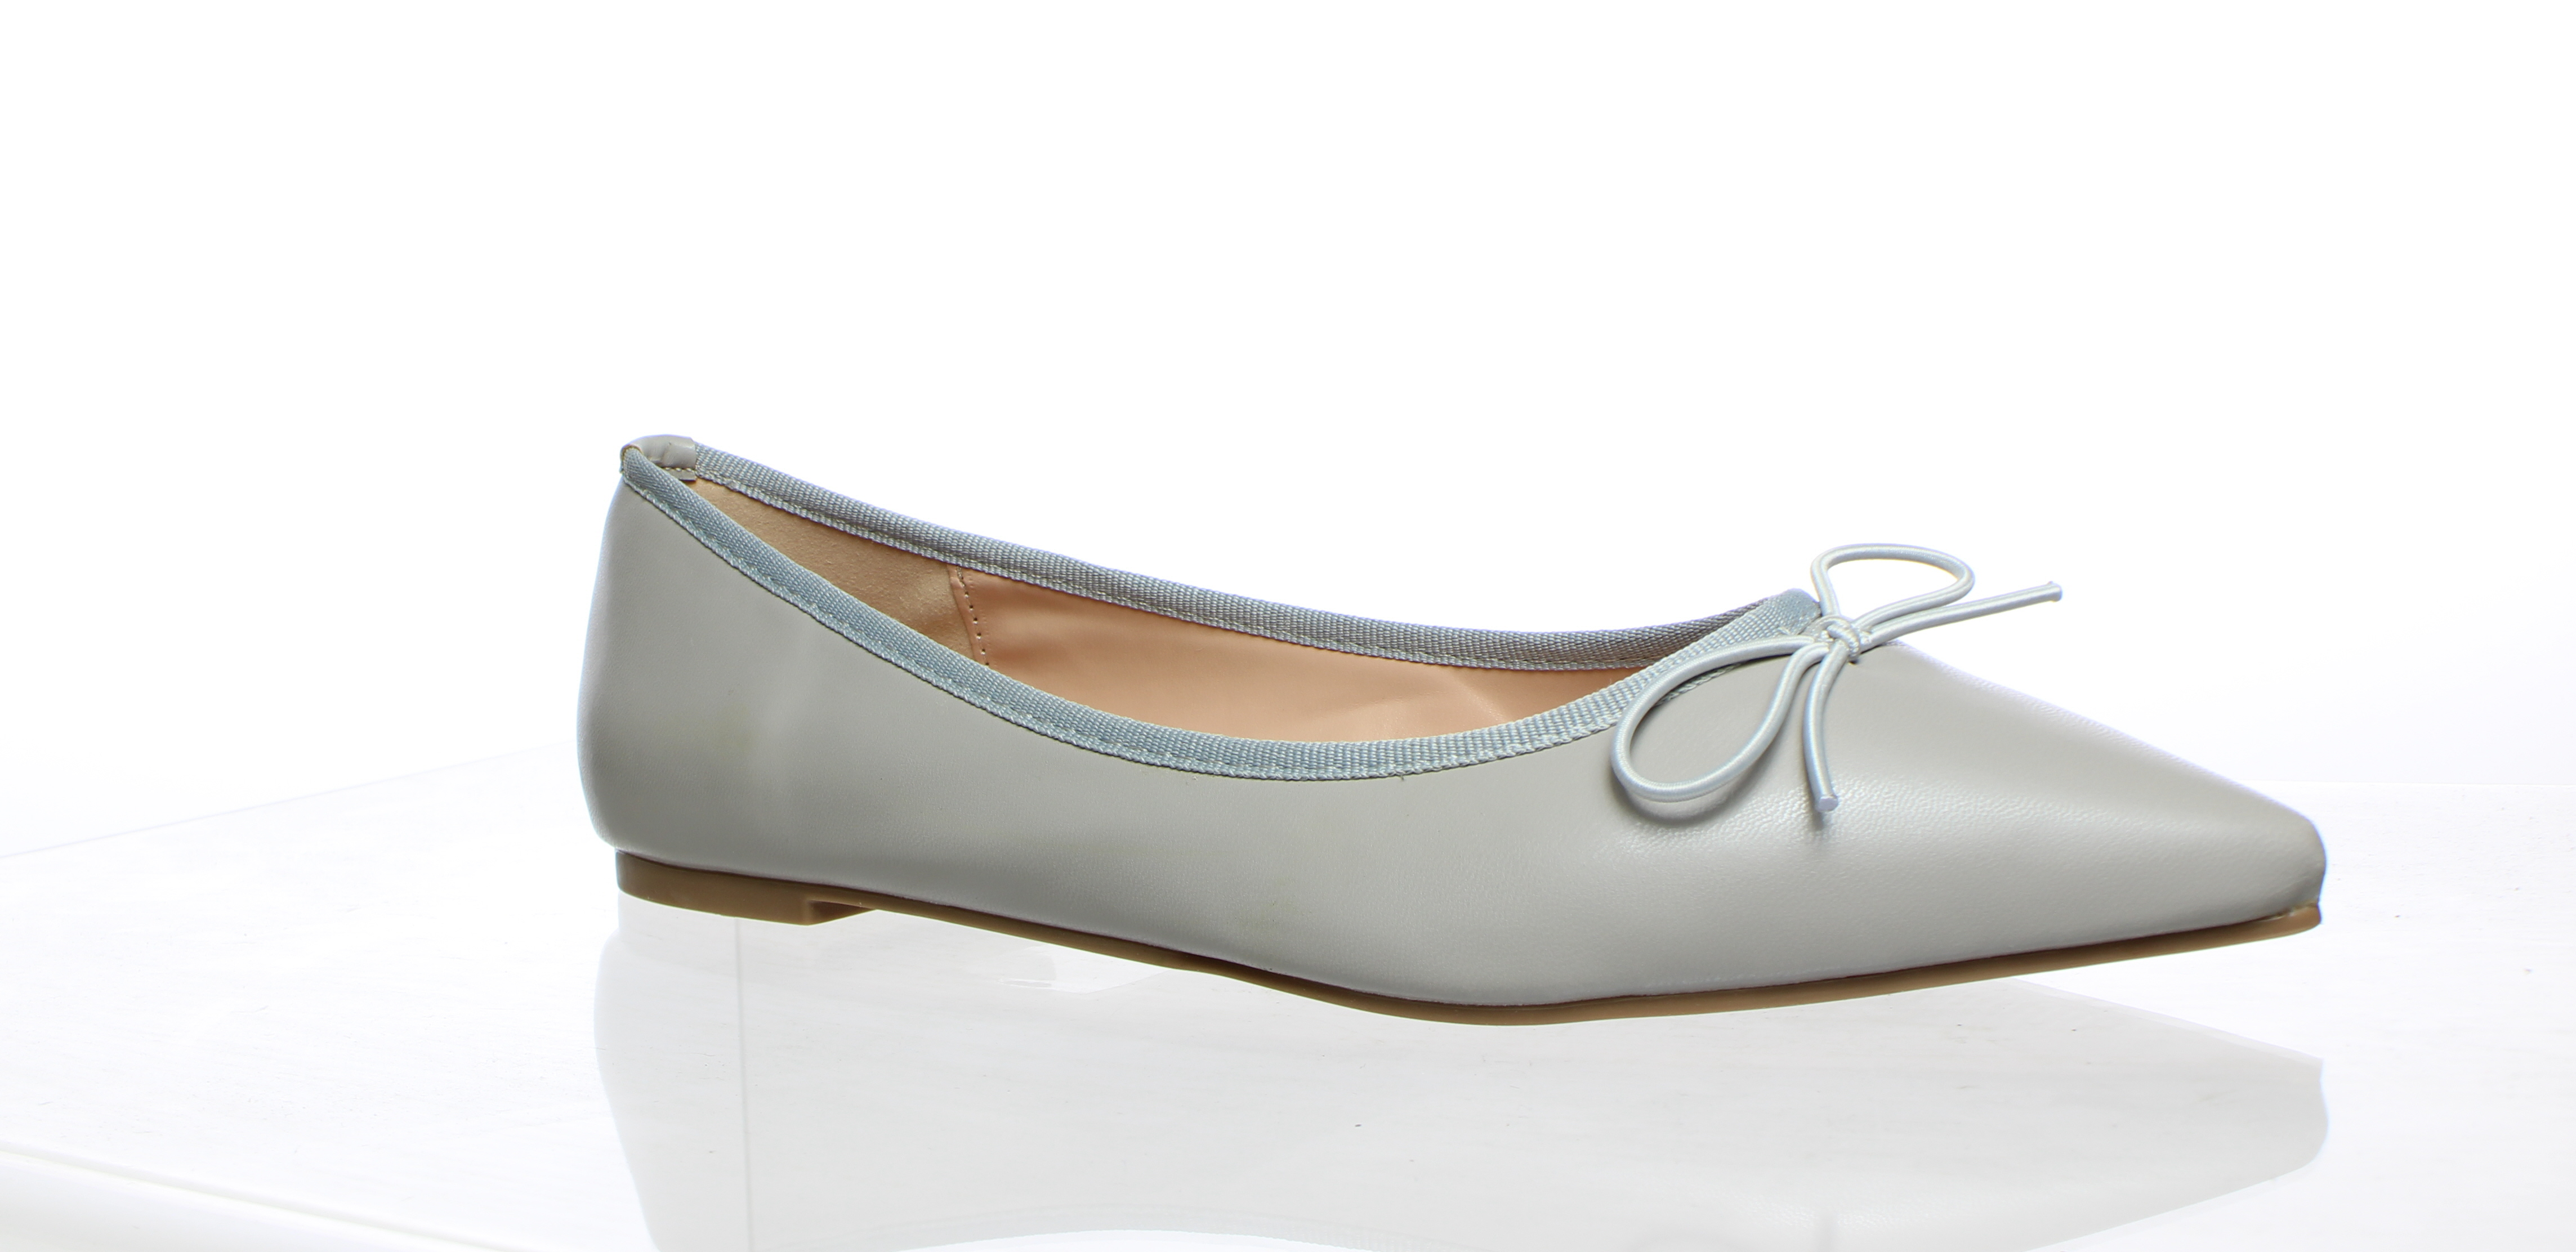 J. Crew Emma Bow Leather Ballet Flats in Gray | Leather